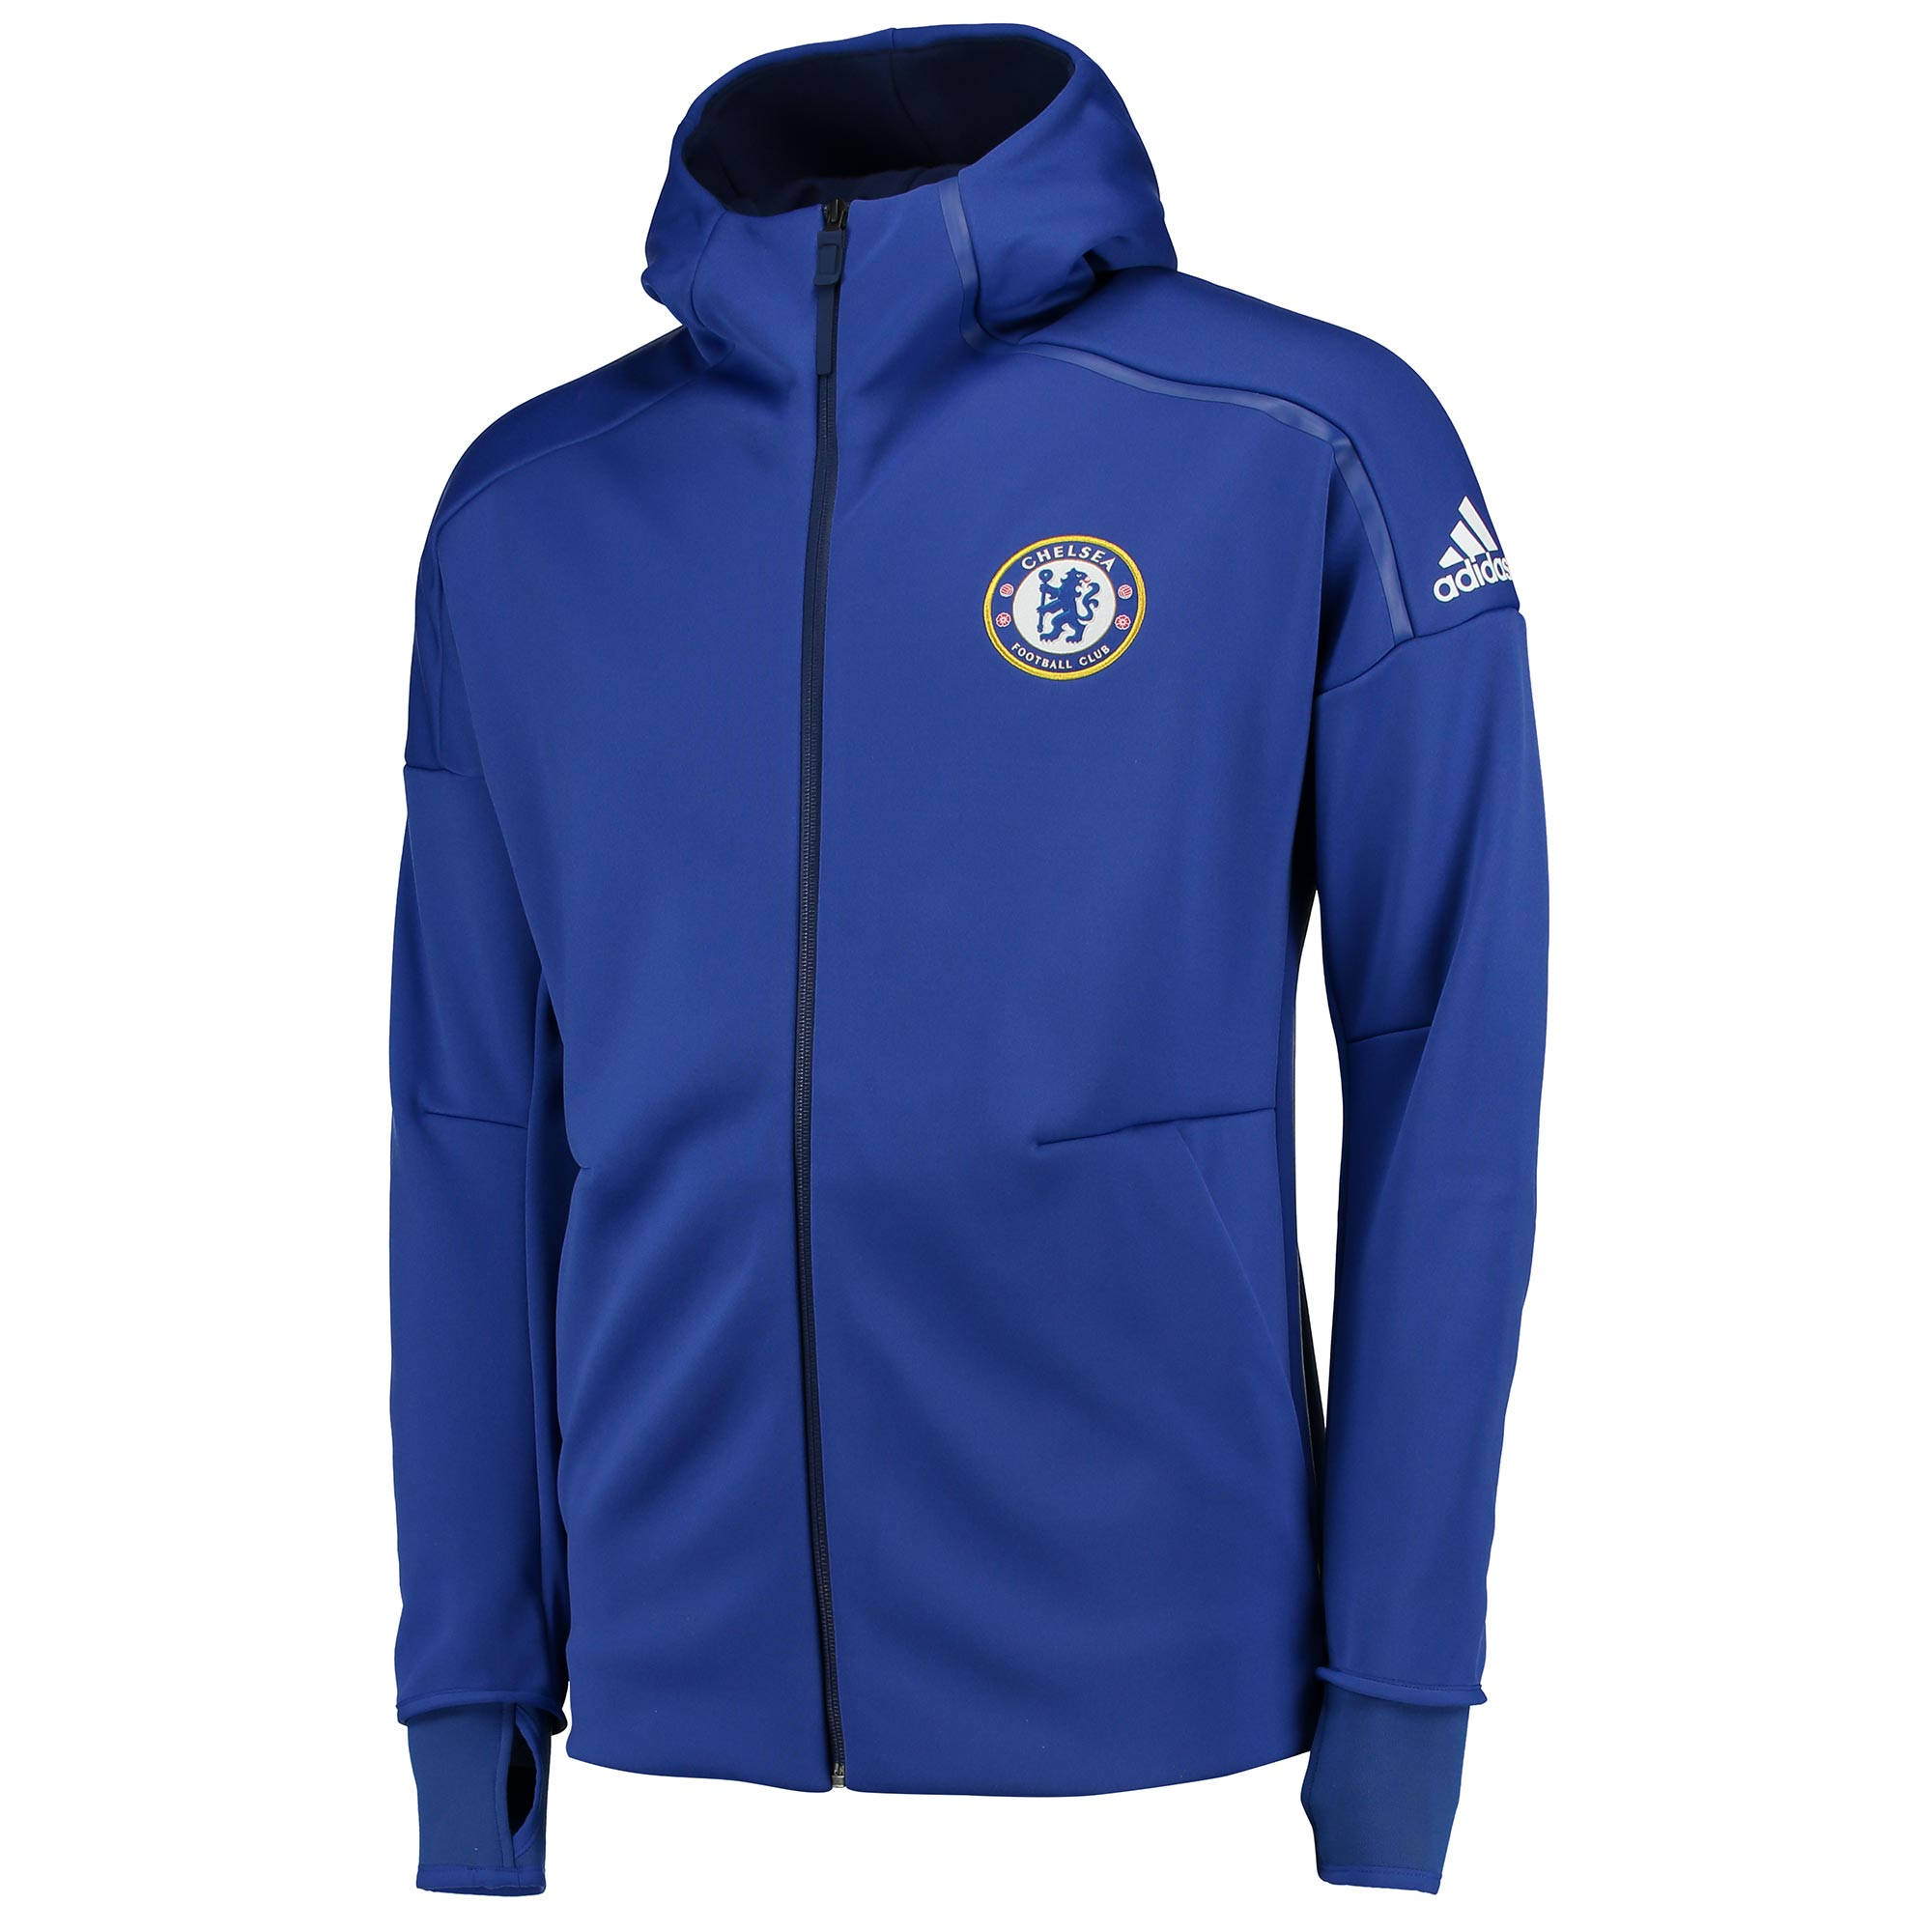 Chelsea Anthem Jacket - Blue   Represent your club with pride in this official Chelsea Anthem Jacket - Blue.   Designed for match days, this Chelsea FC anthem jacket replicates the professional, pre-match image displayed by the players themselves.   Details:    • Slim fit • Droptail hem • Full zip with hood • Thumb holes on cuffs • Front zip kangaroo pockets • Chelsea FC club crest screen-printed on left chest • adidas brandmark screen-printed on the left sleeve • 100% polyester